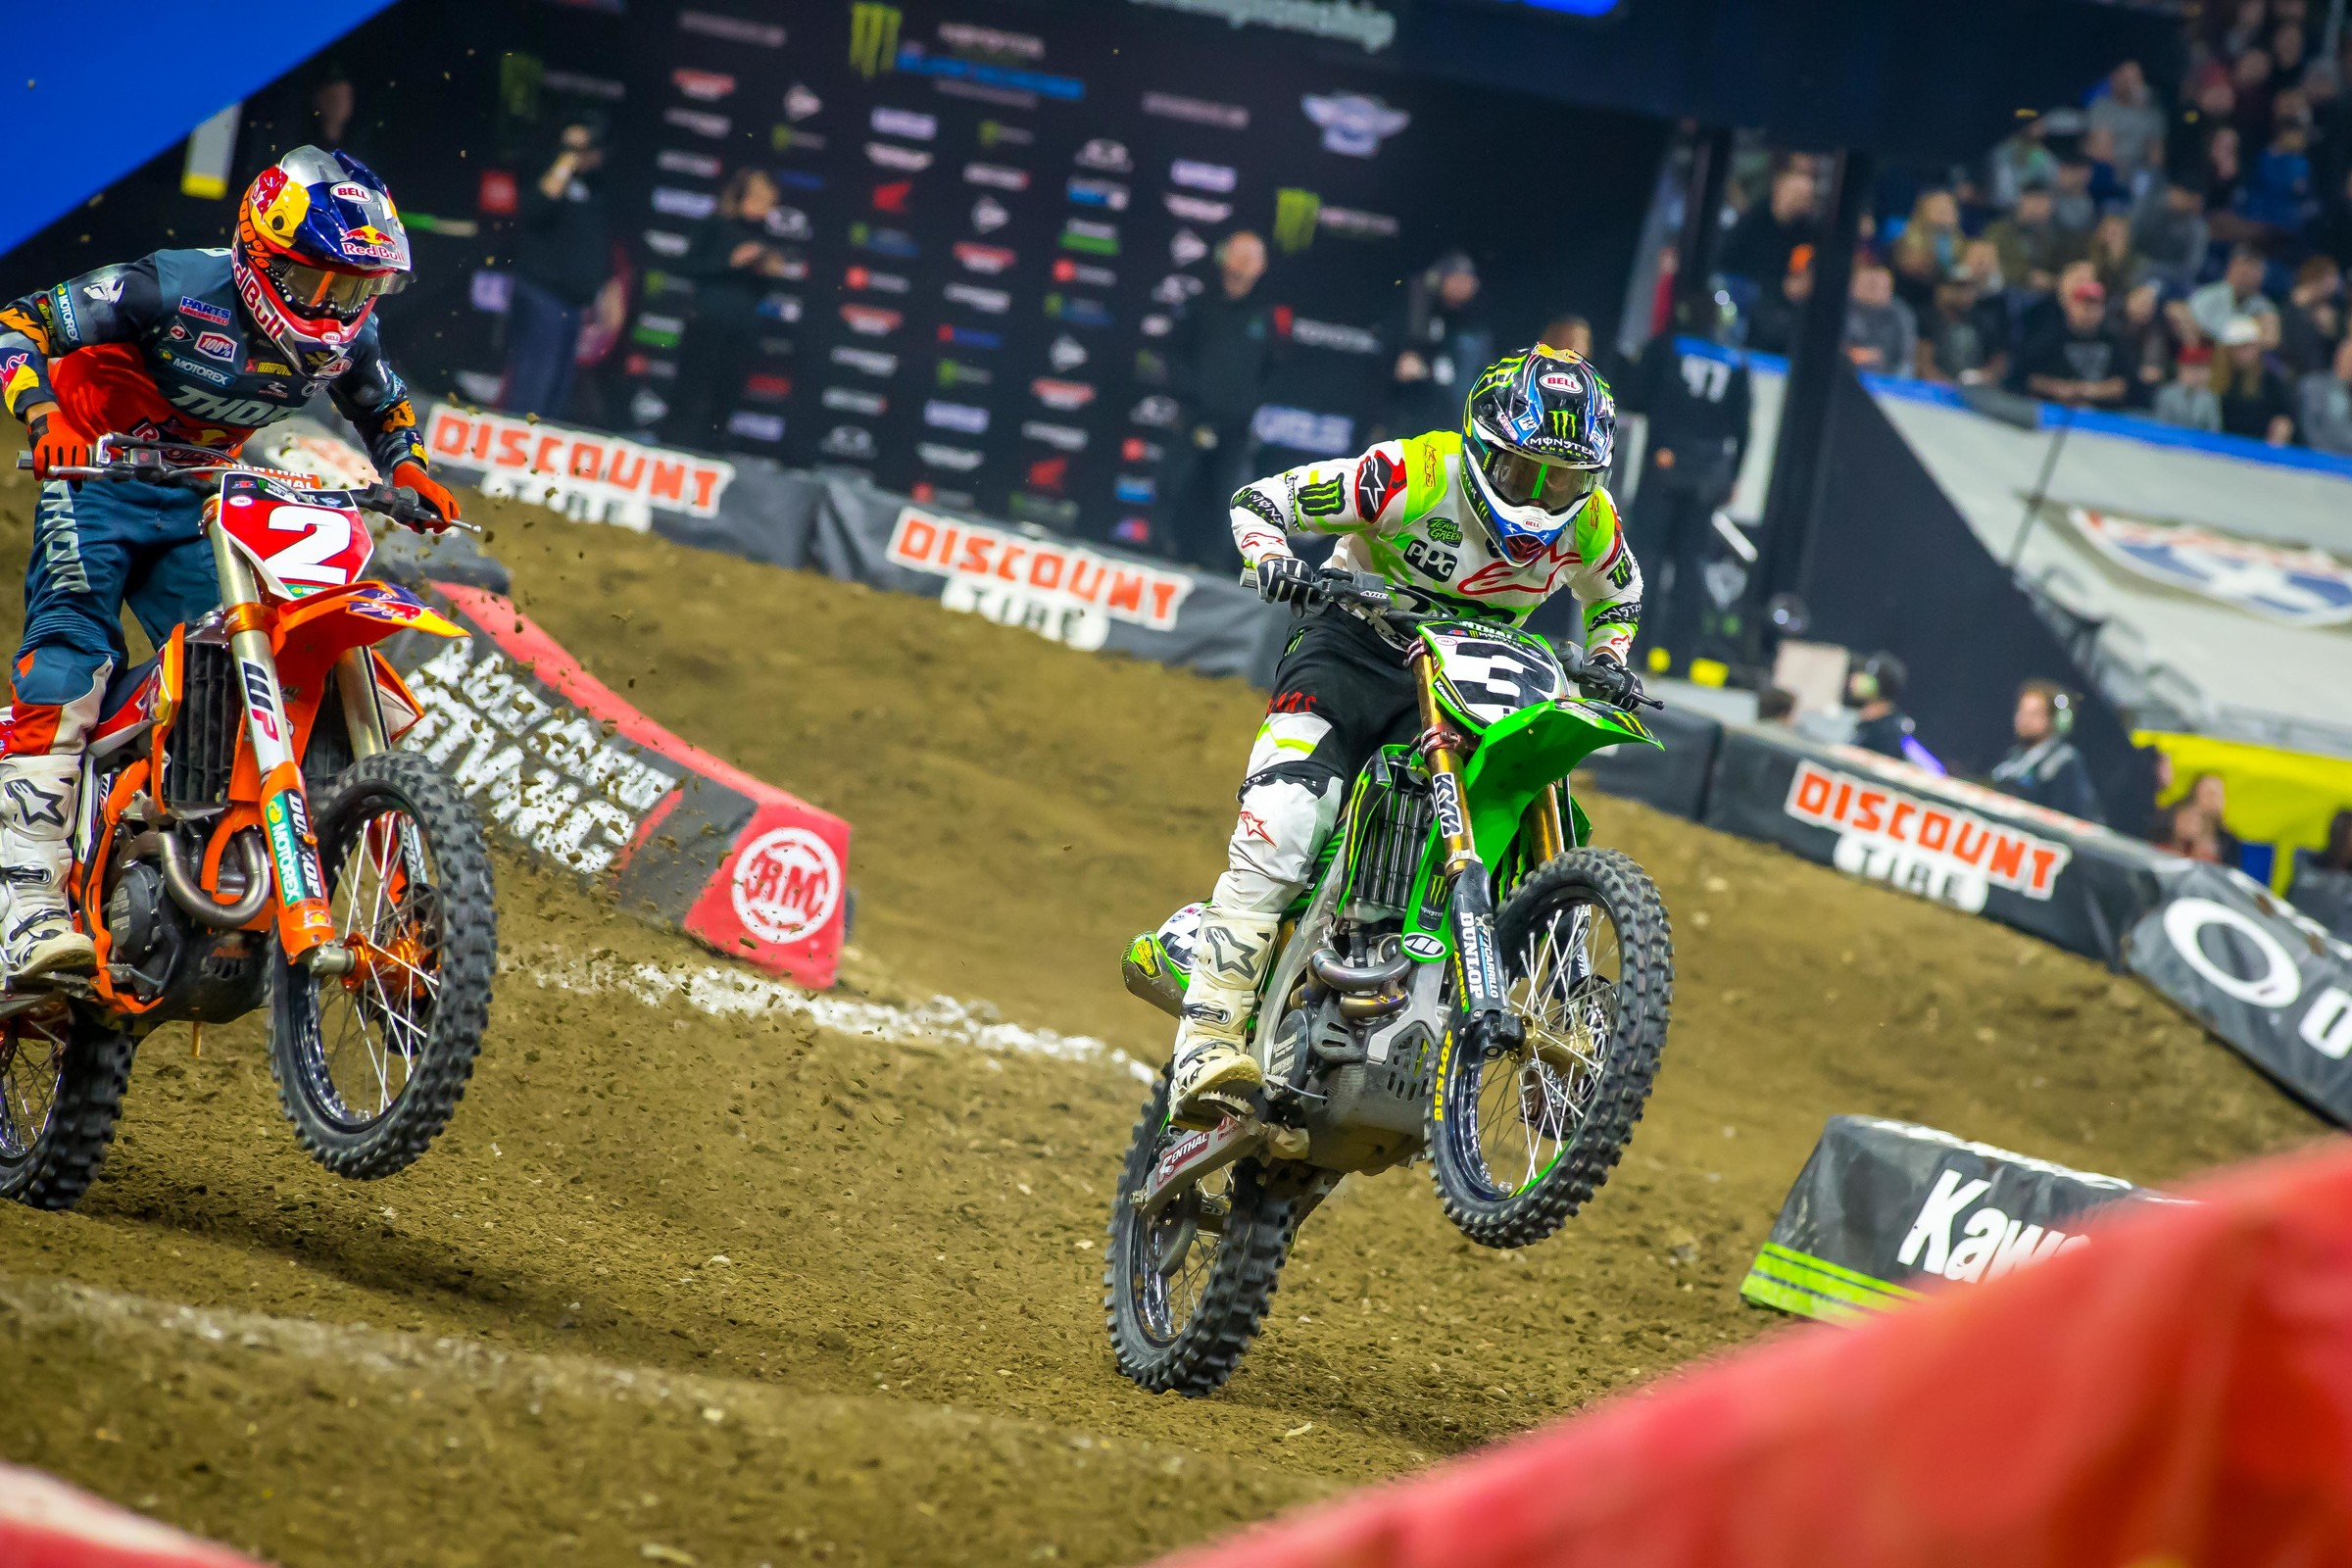 We saw Eli Tomac respond from his bad weekend in Arlington when he came out flying early in Detroit.